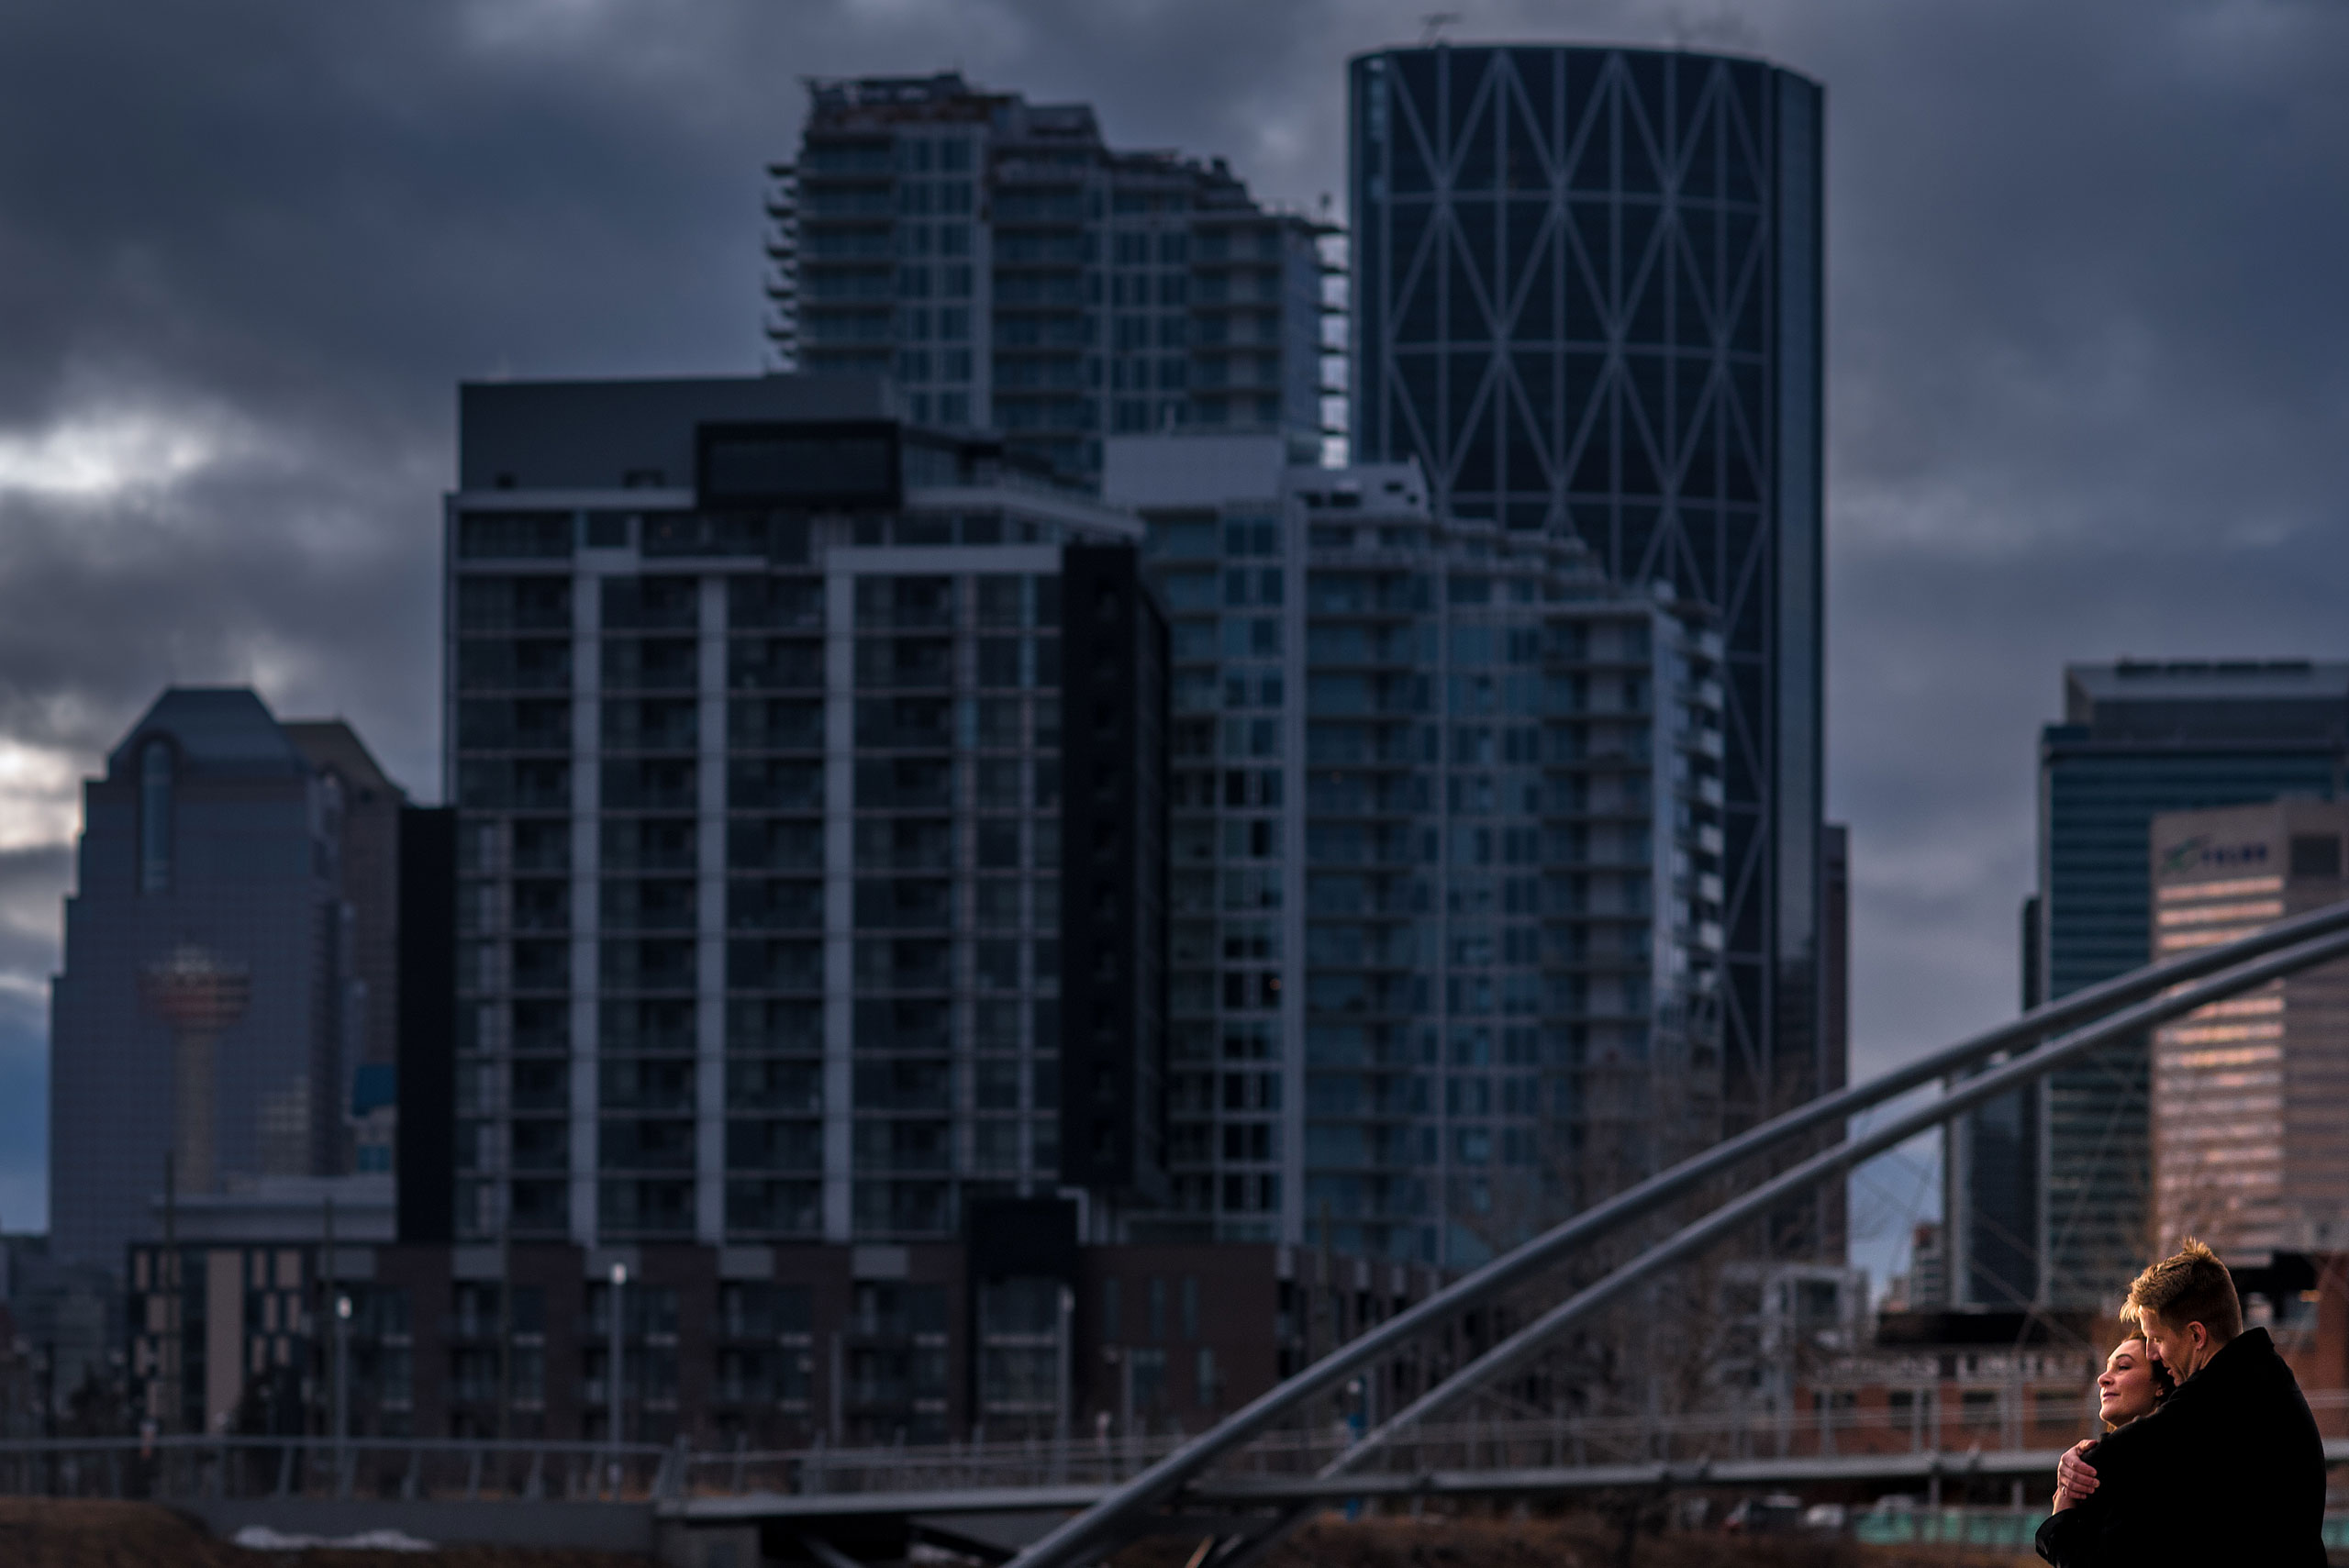 man and women on a bridge with a city downtown skyline in the background for Calgary East Village Engagement Session